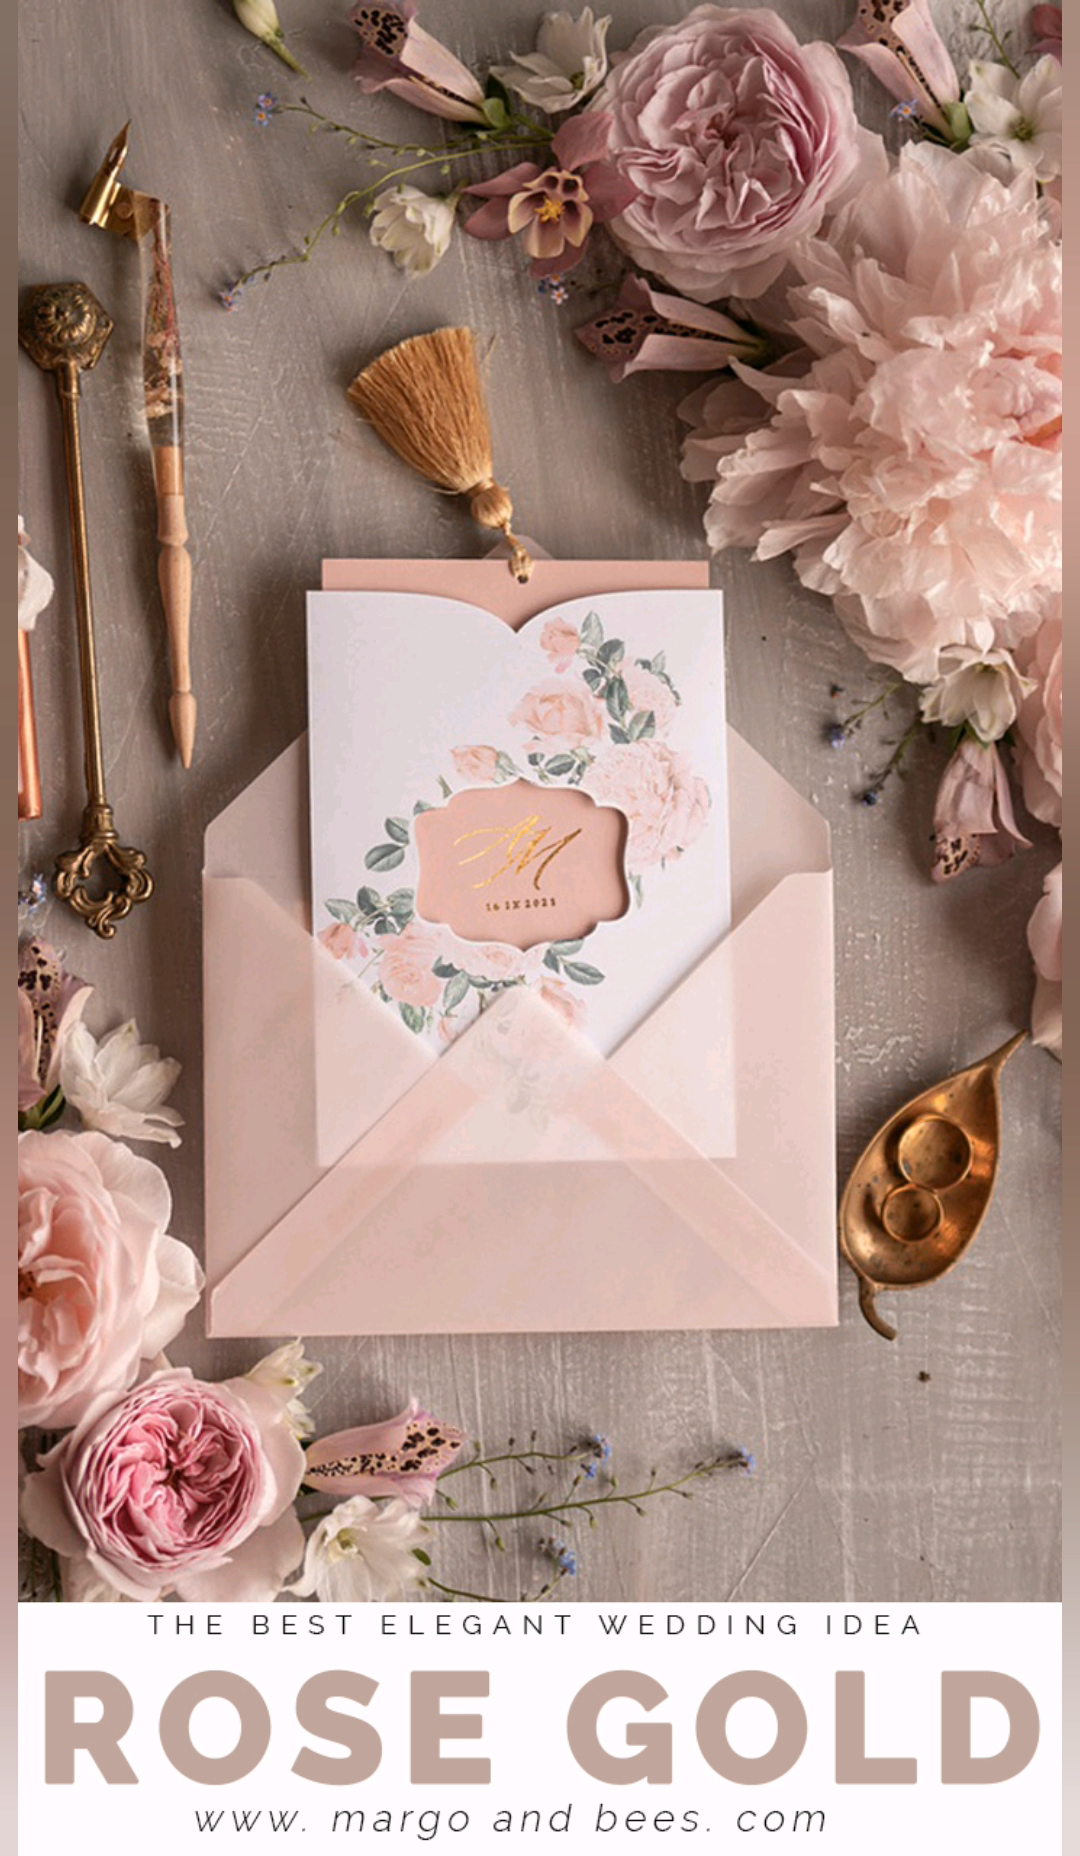 14 wedding Card ideas